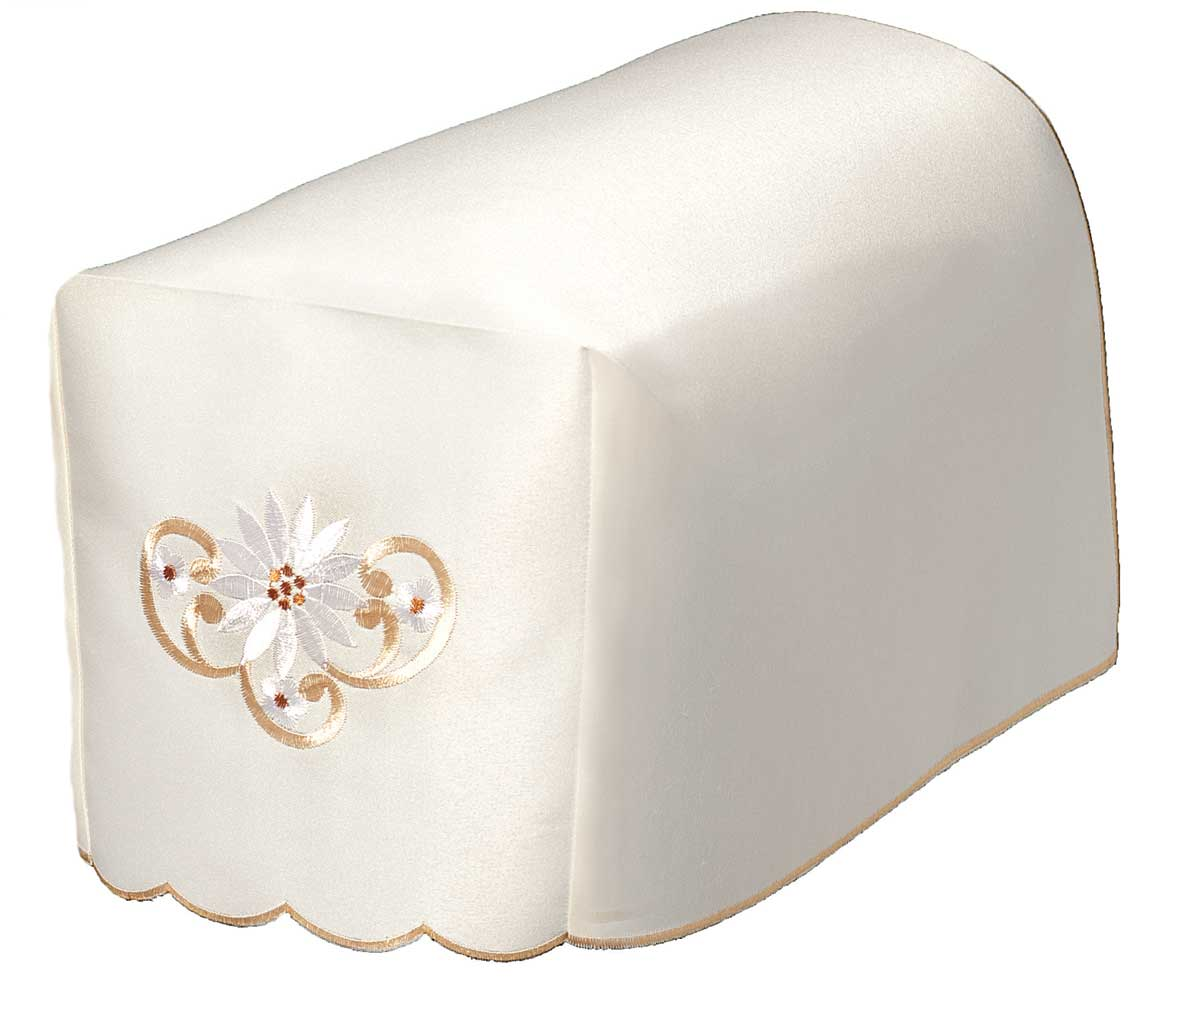 Monica daisy embroidered chair arm covers